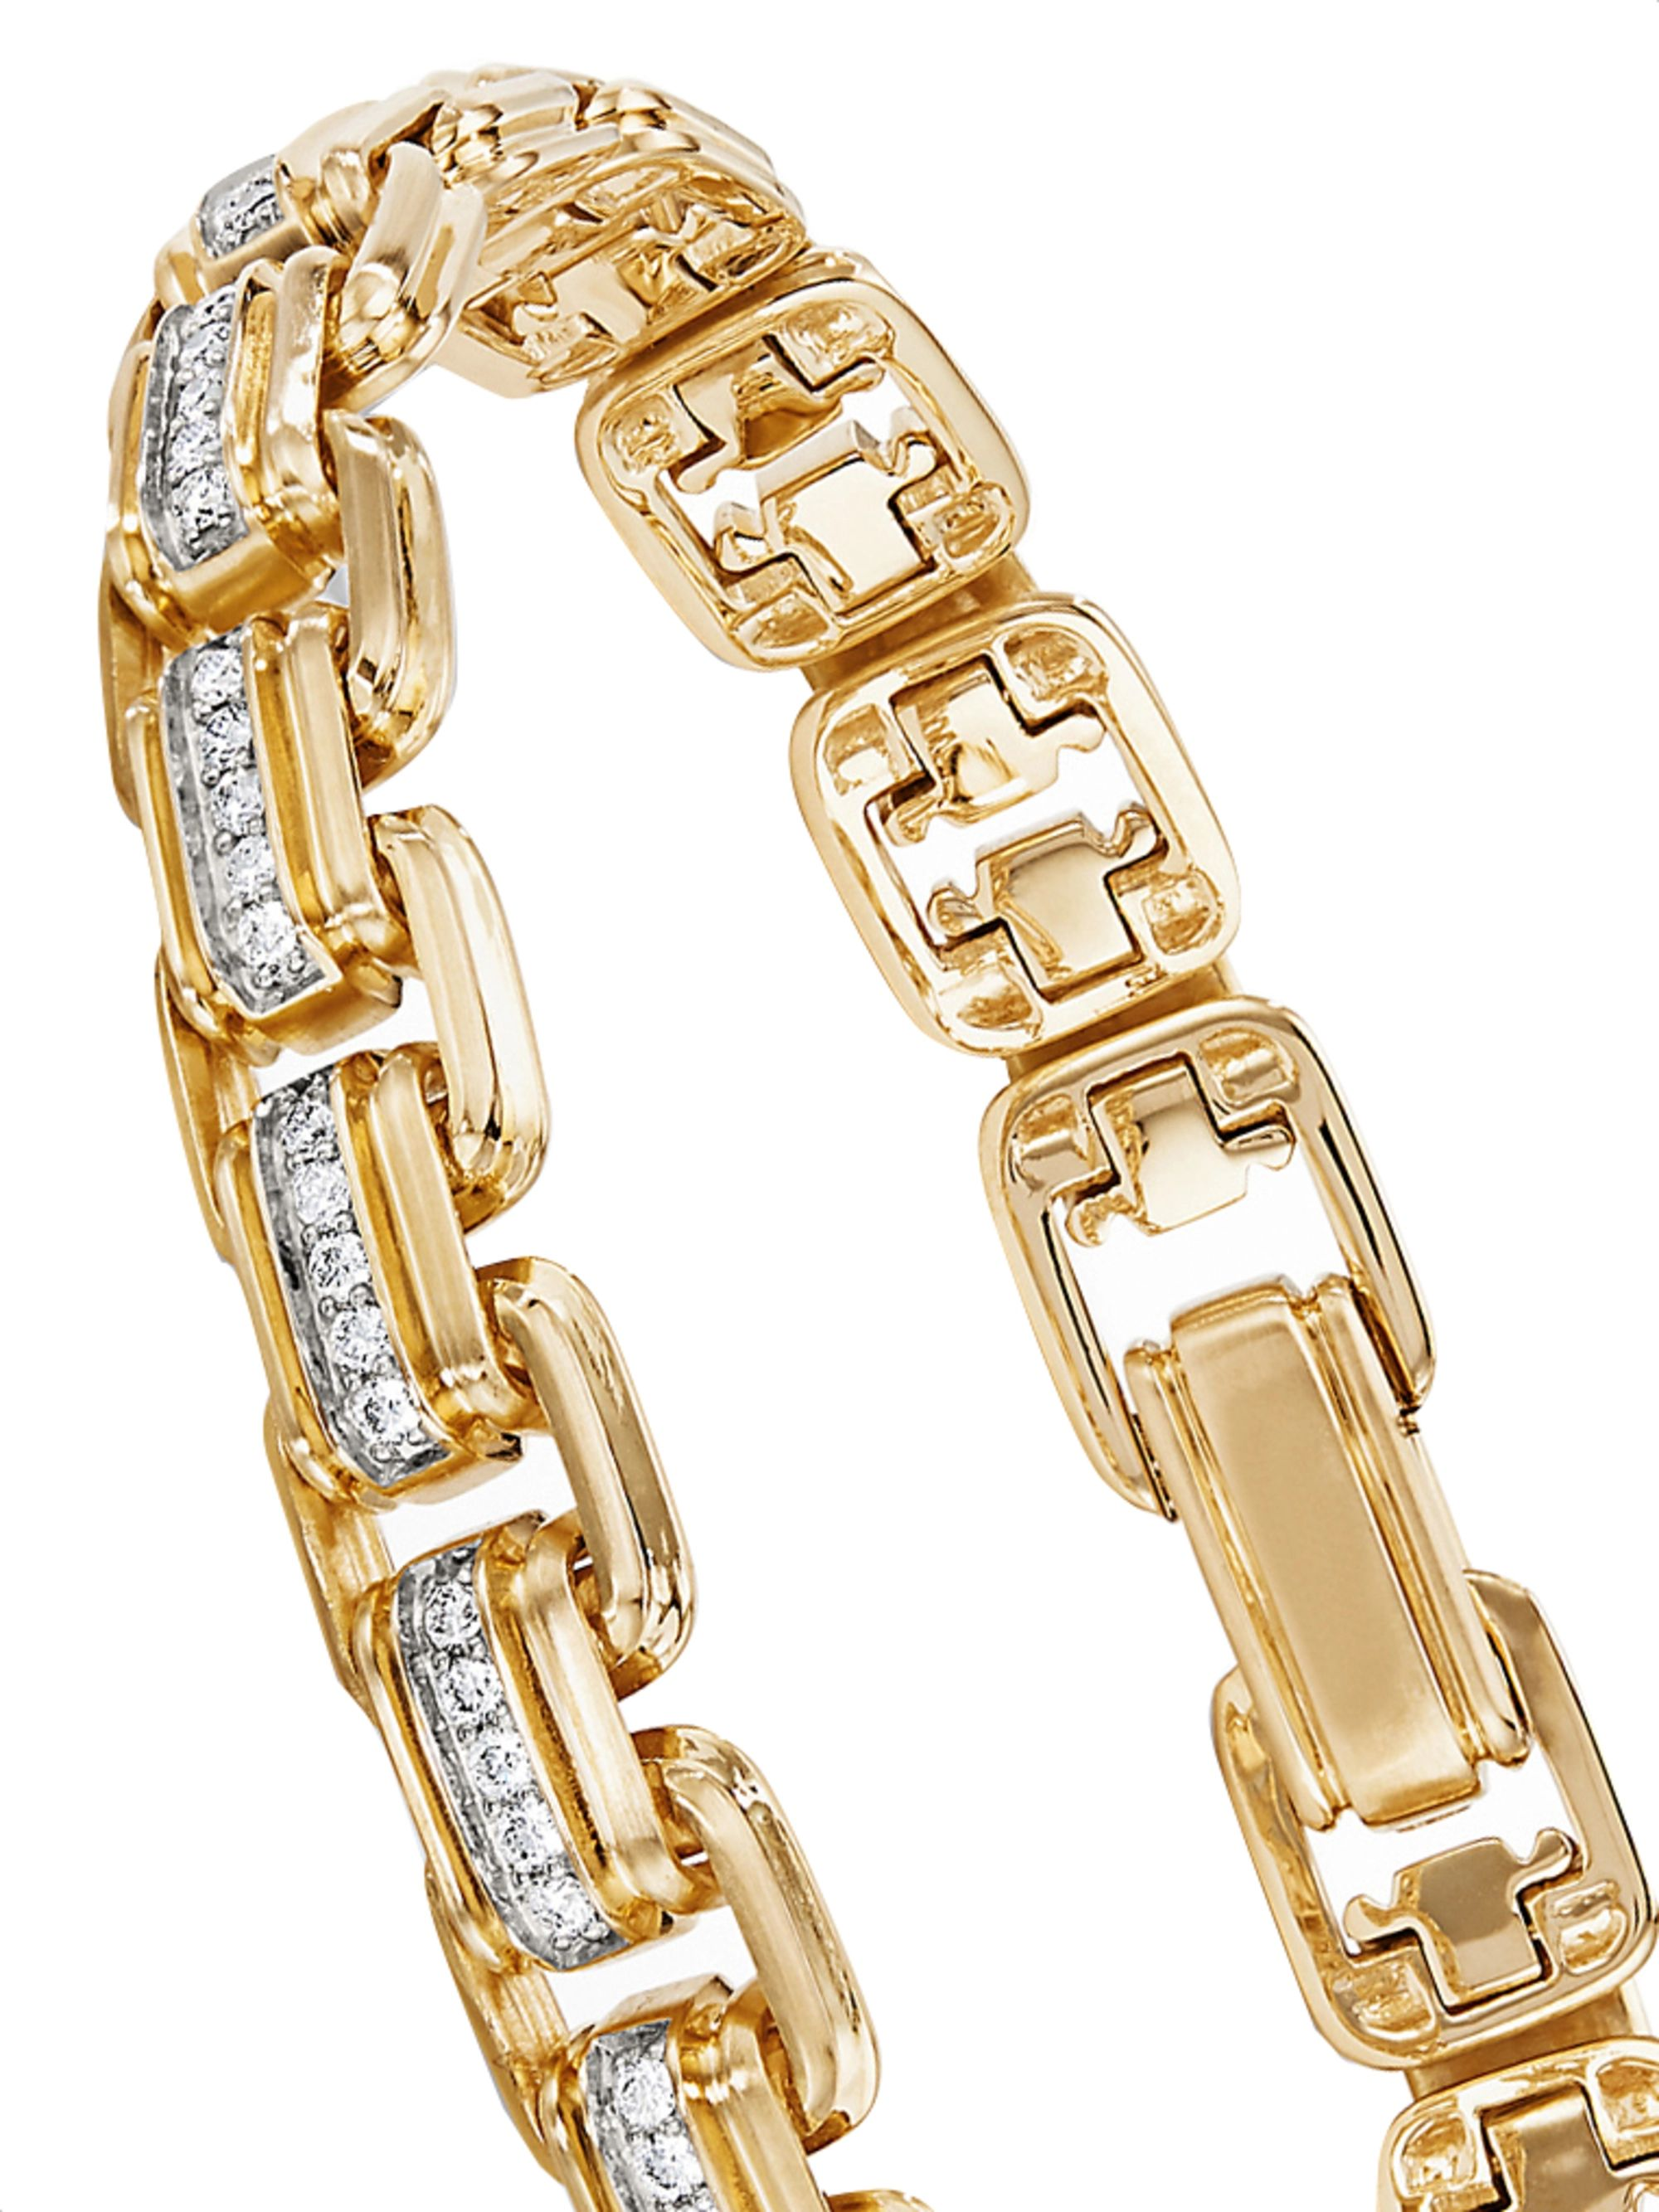 DAVID YURMAN 18-Karat Gold Diamond Bracelet